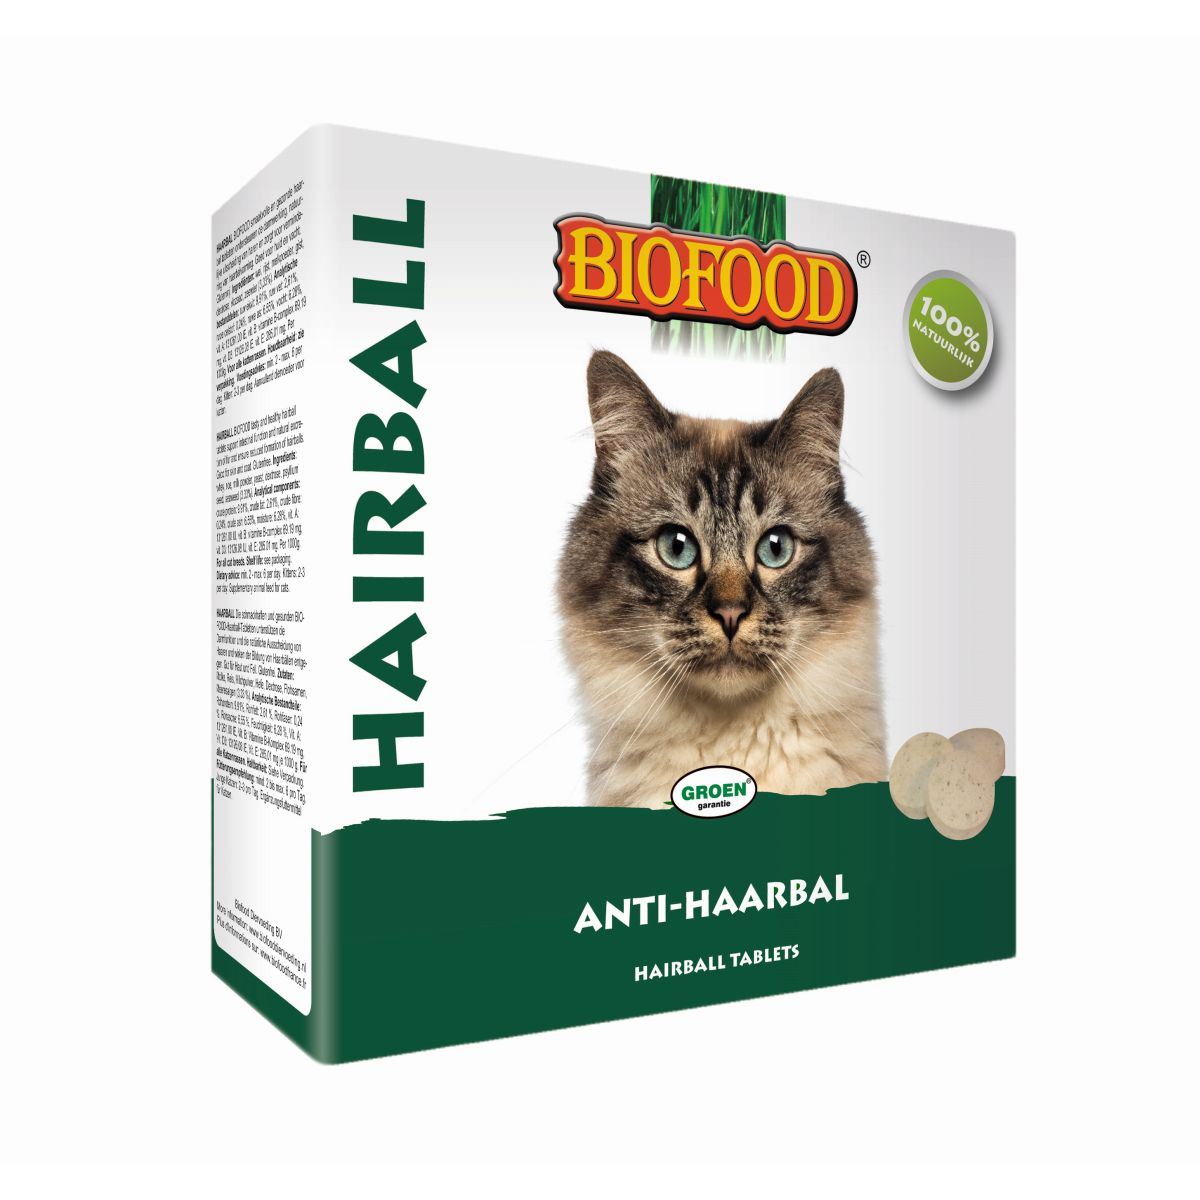 BF ANTI HAARBAL TABLETTEN 100S 00002